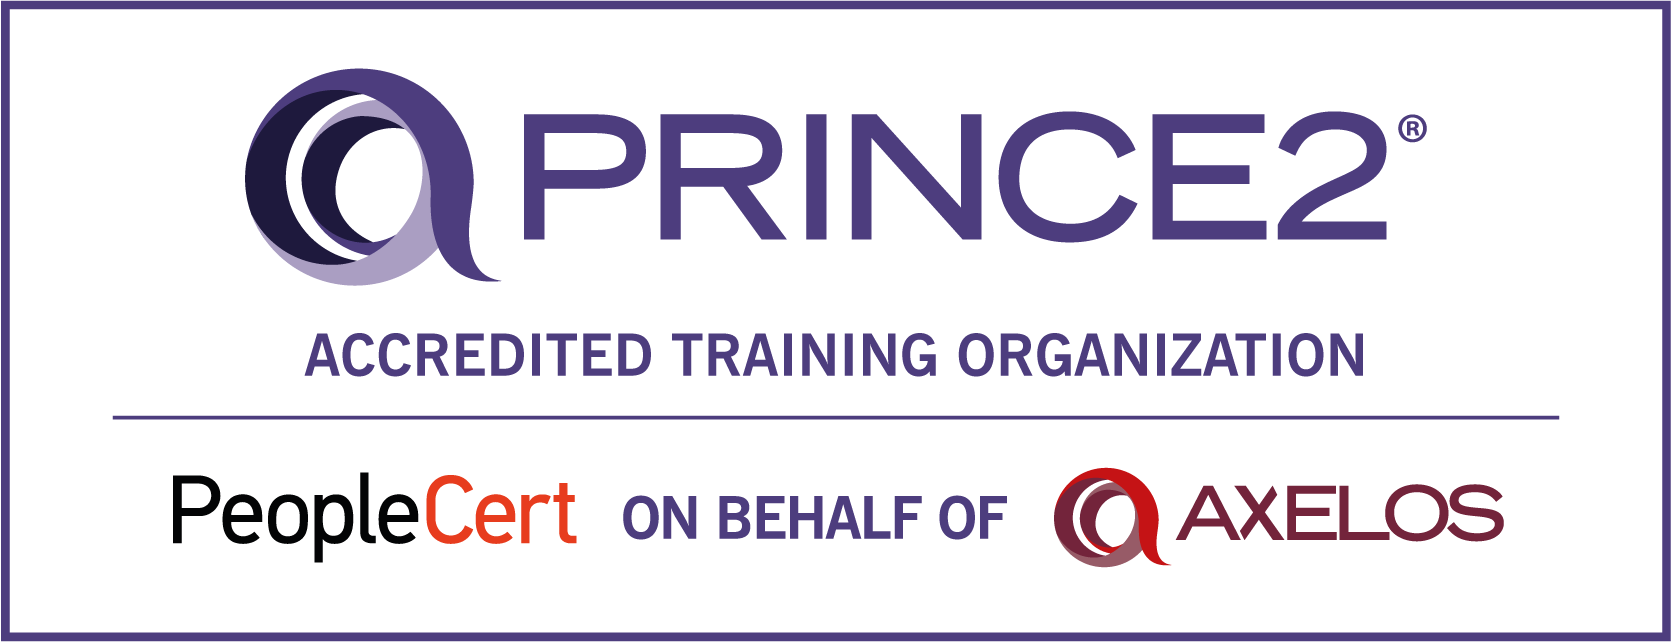 prince2, prince2 methodology, prince2 course, prince2 project management, prince2 certification